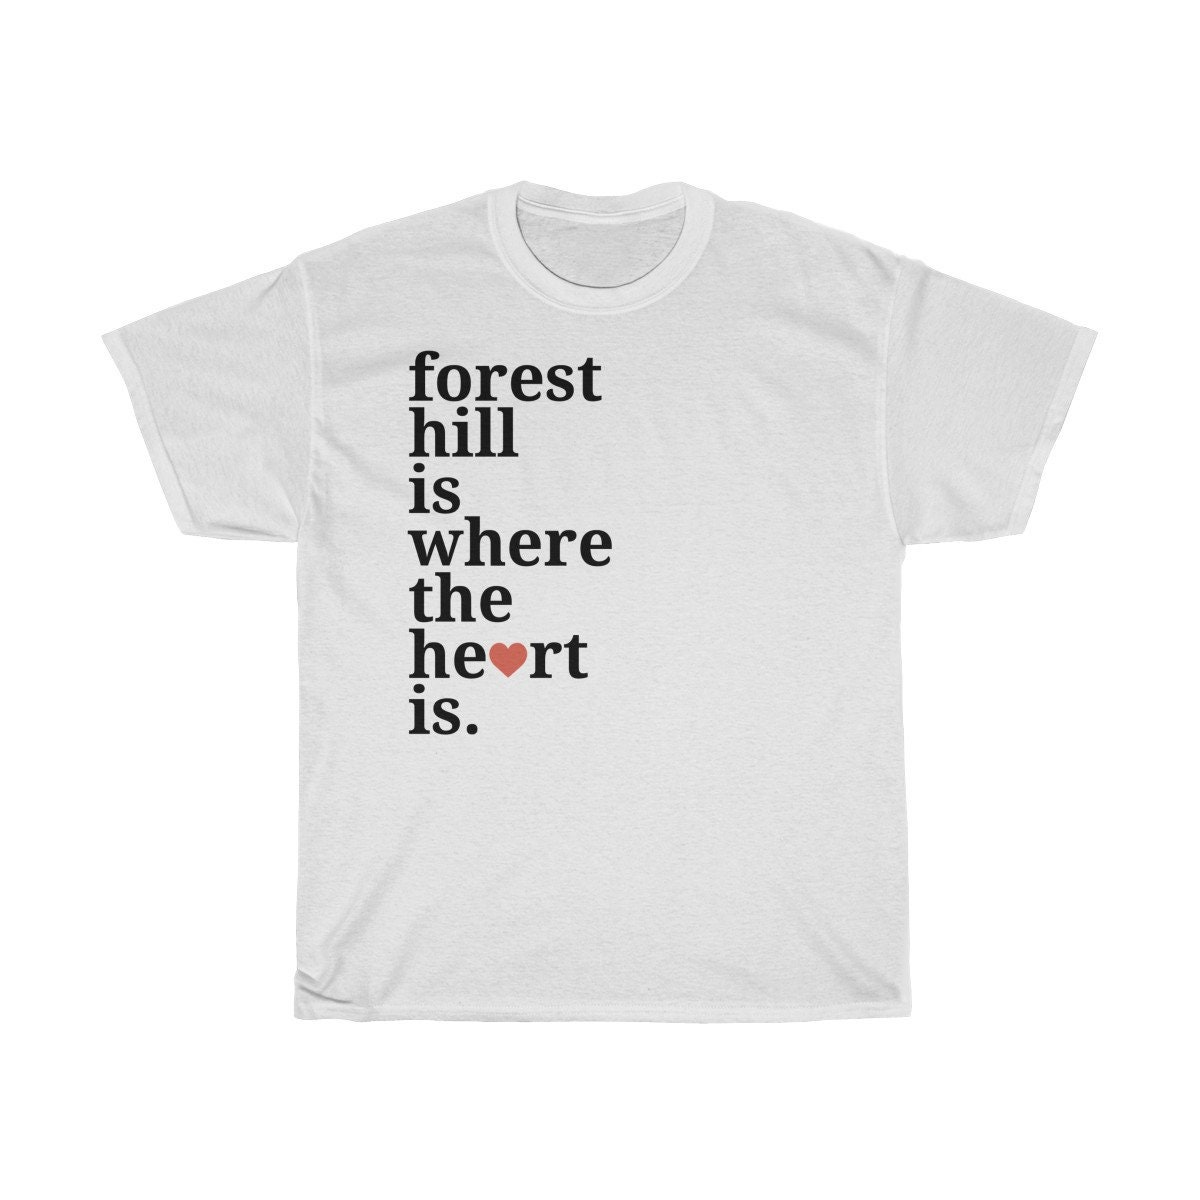 Forest Hill The Is Where The Hill Heart Is T Shirt 097fbd Bobomdccom